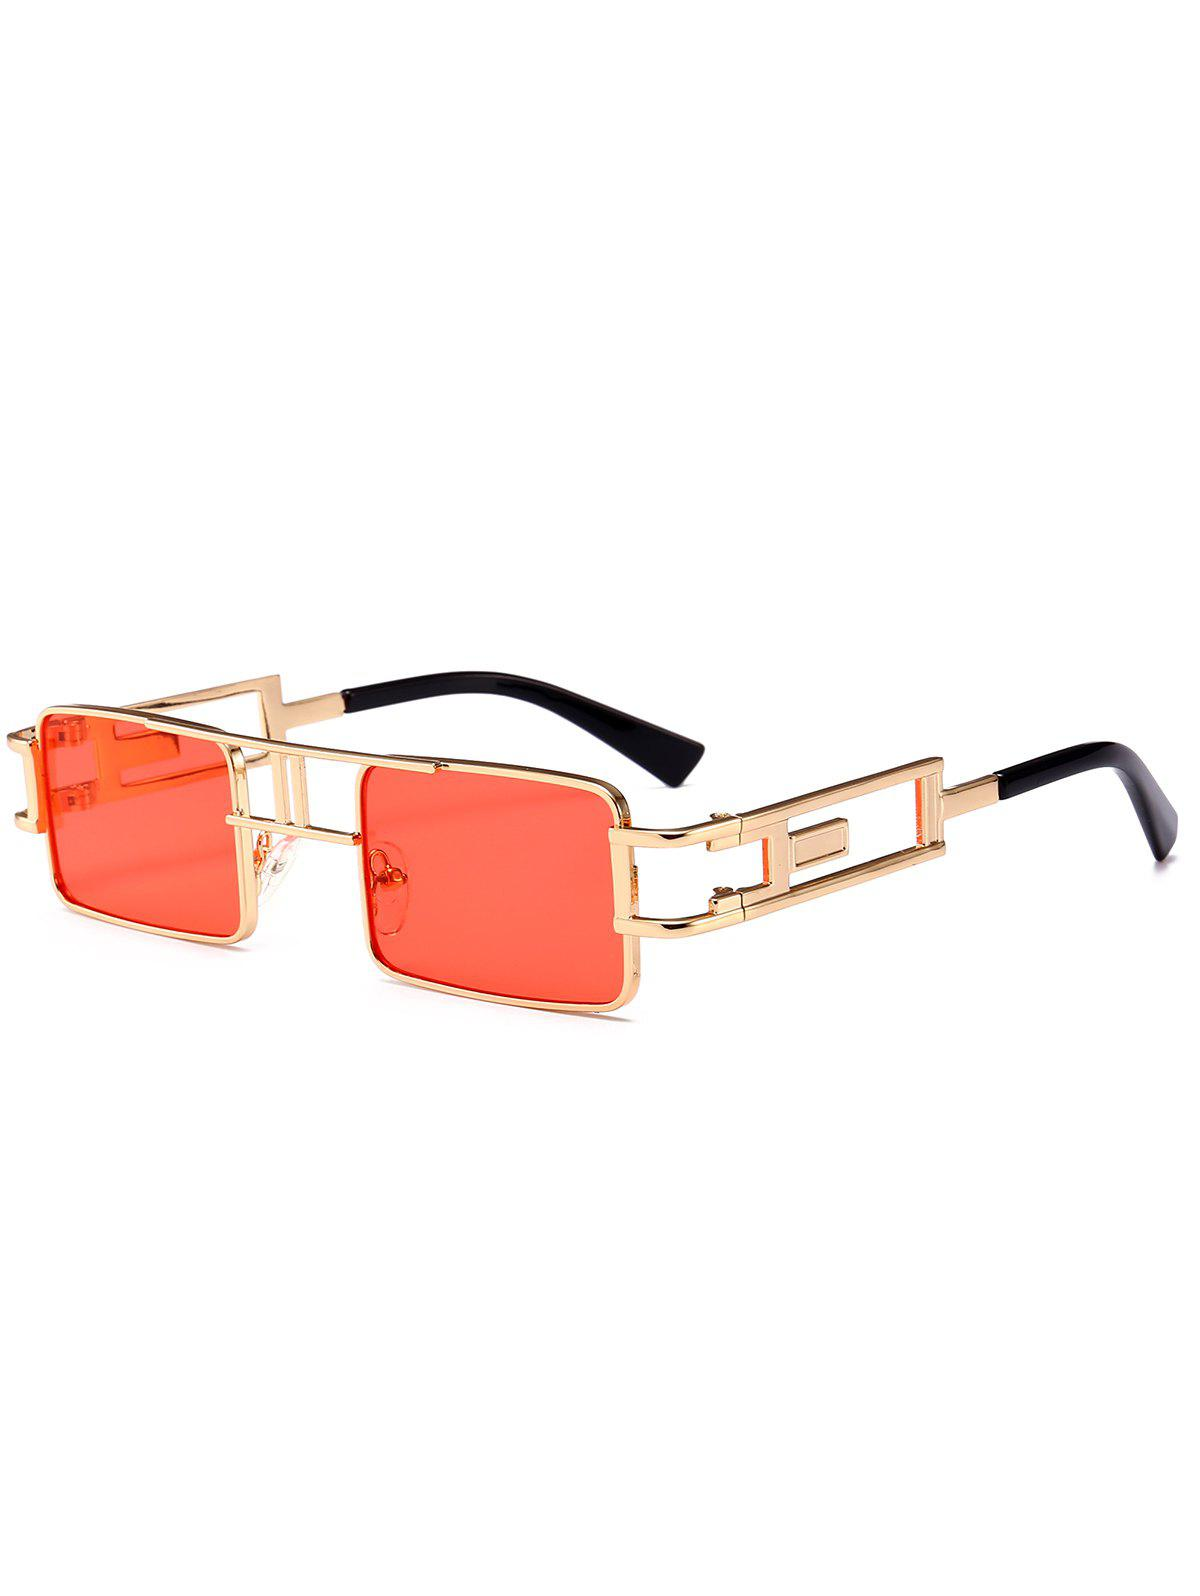 Cut Out Carver Frame Square Sunglasses - THROUGH RED